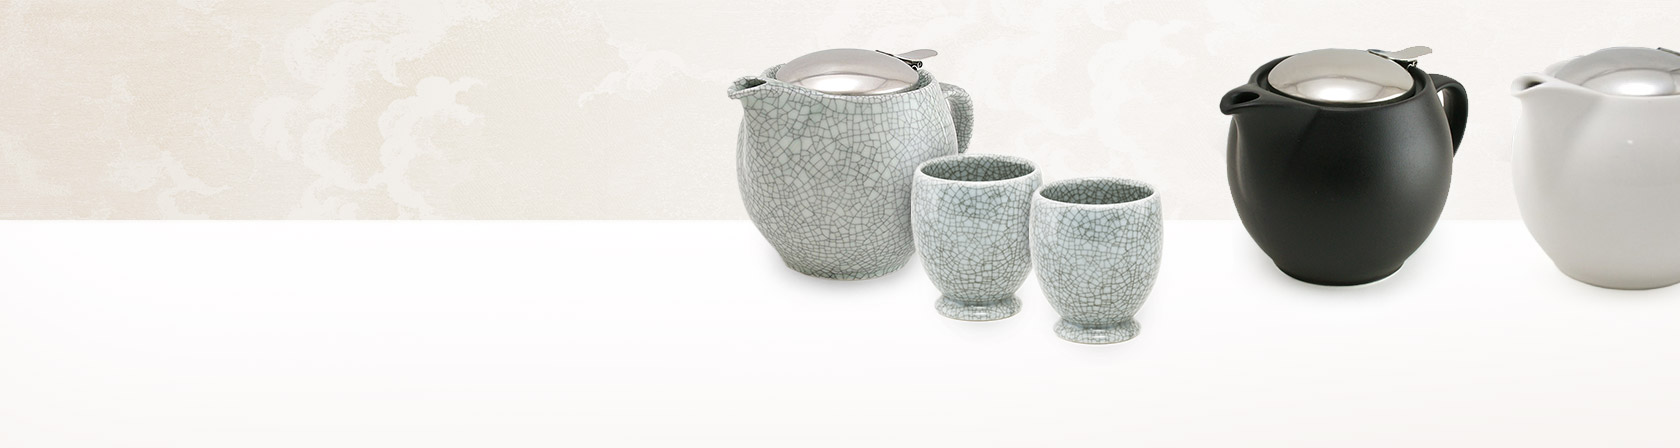 Japanese tea accessories